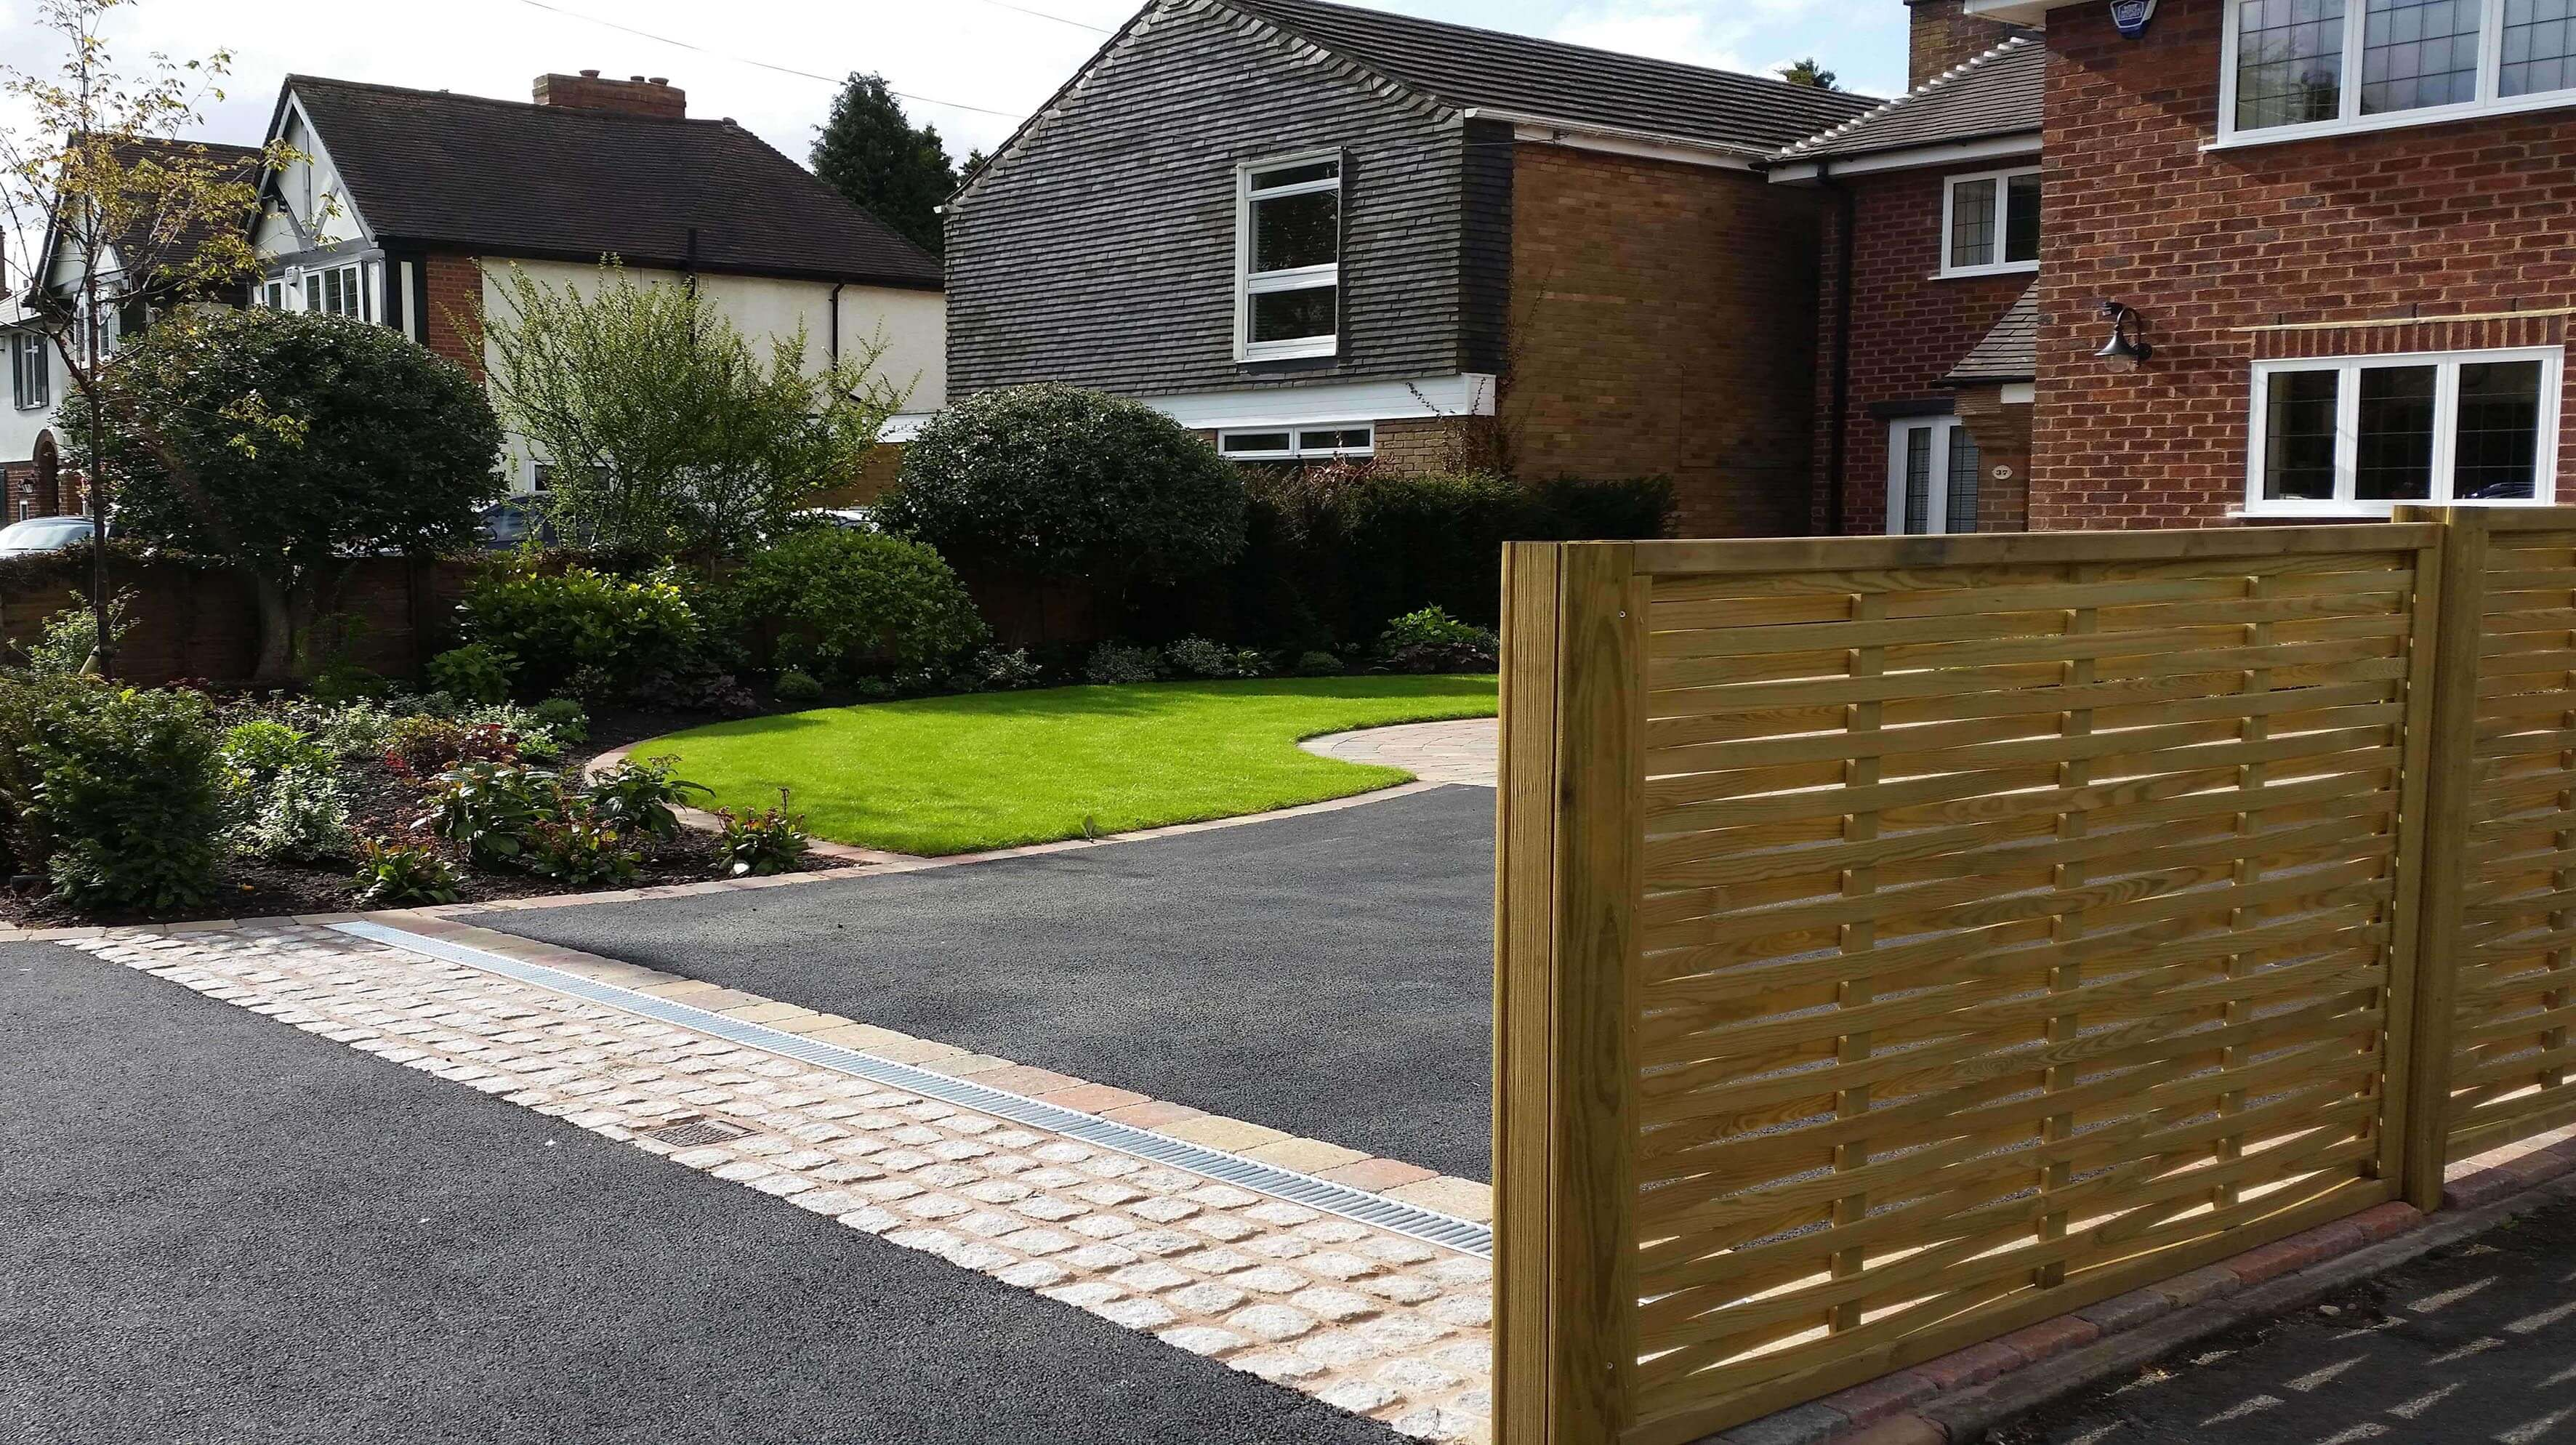 Finished driveway featuring Woven fence panels